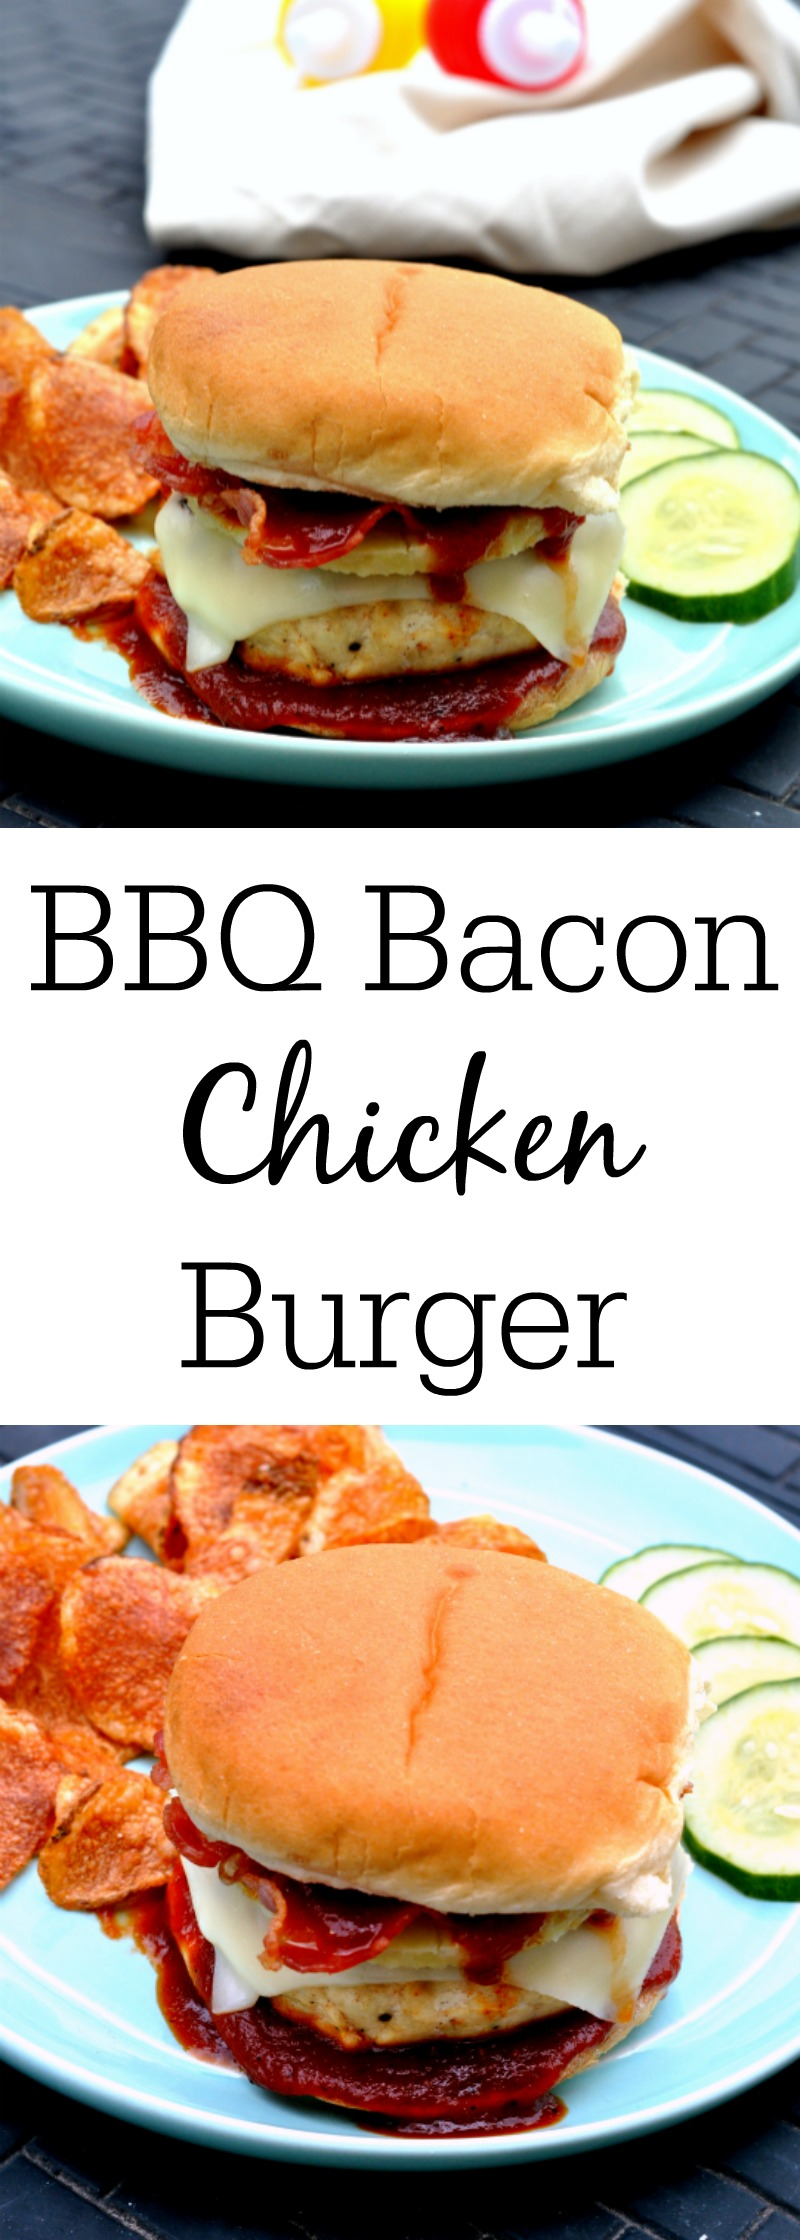 BBQ Bacon Chicken Burger